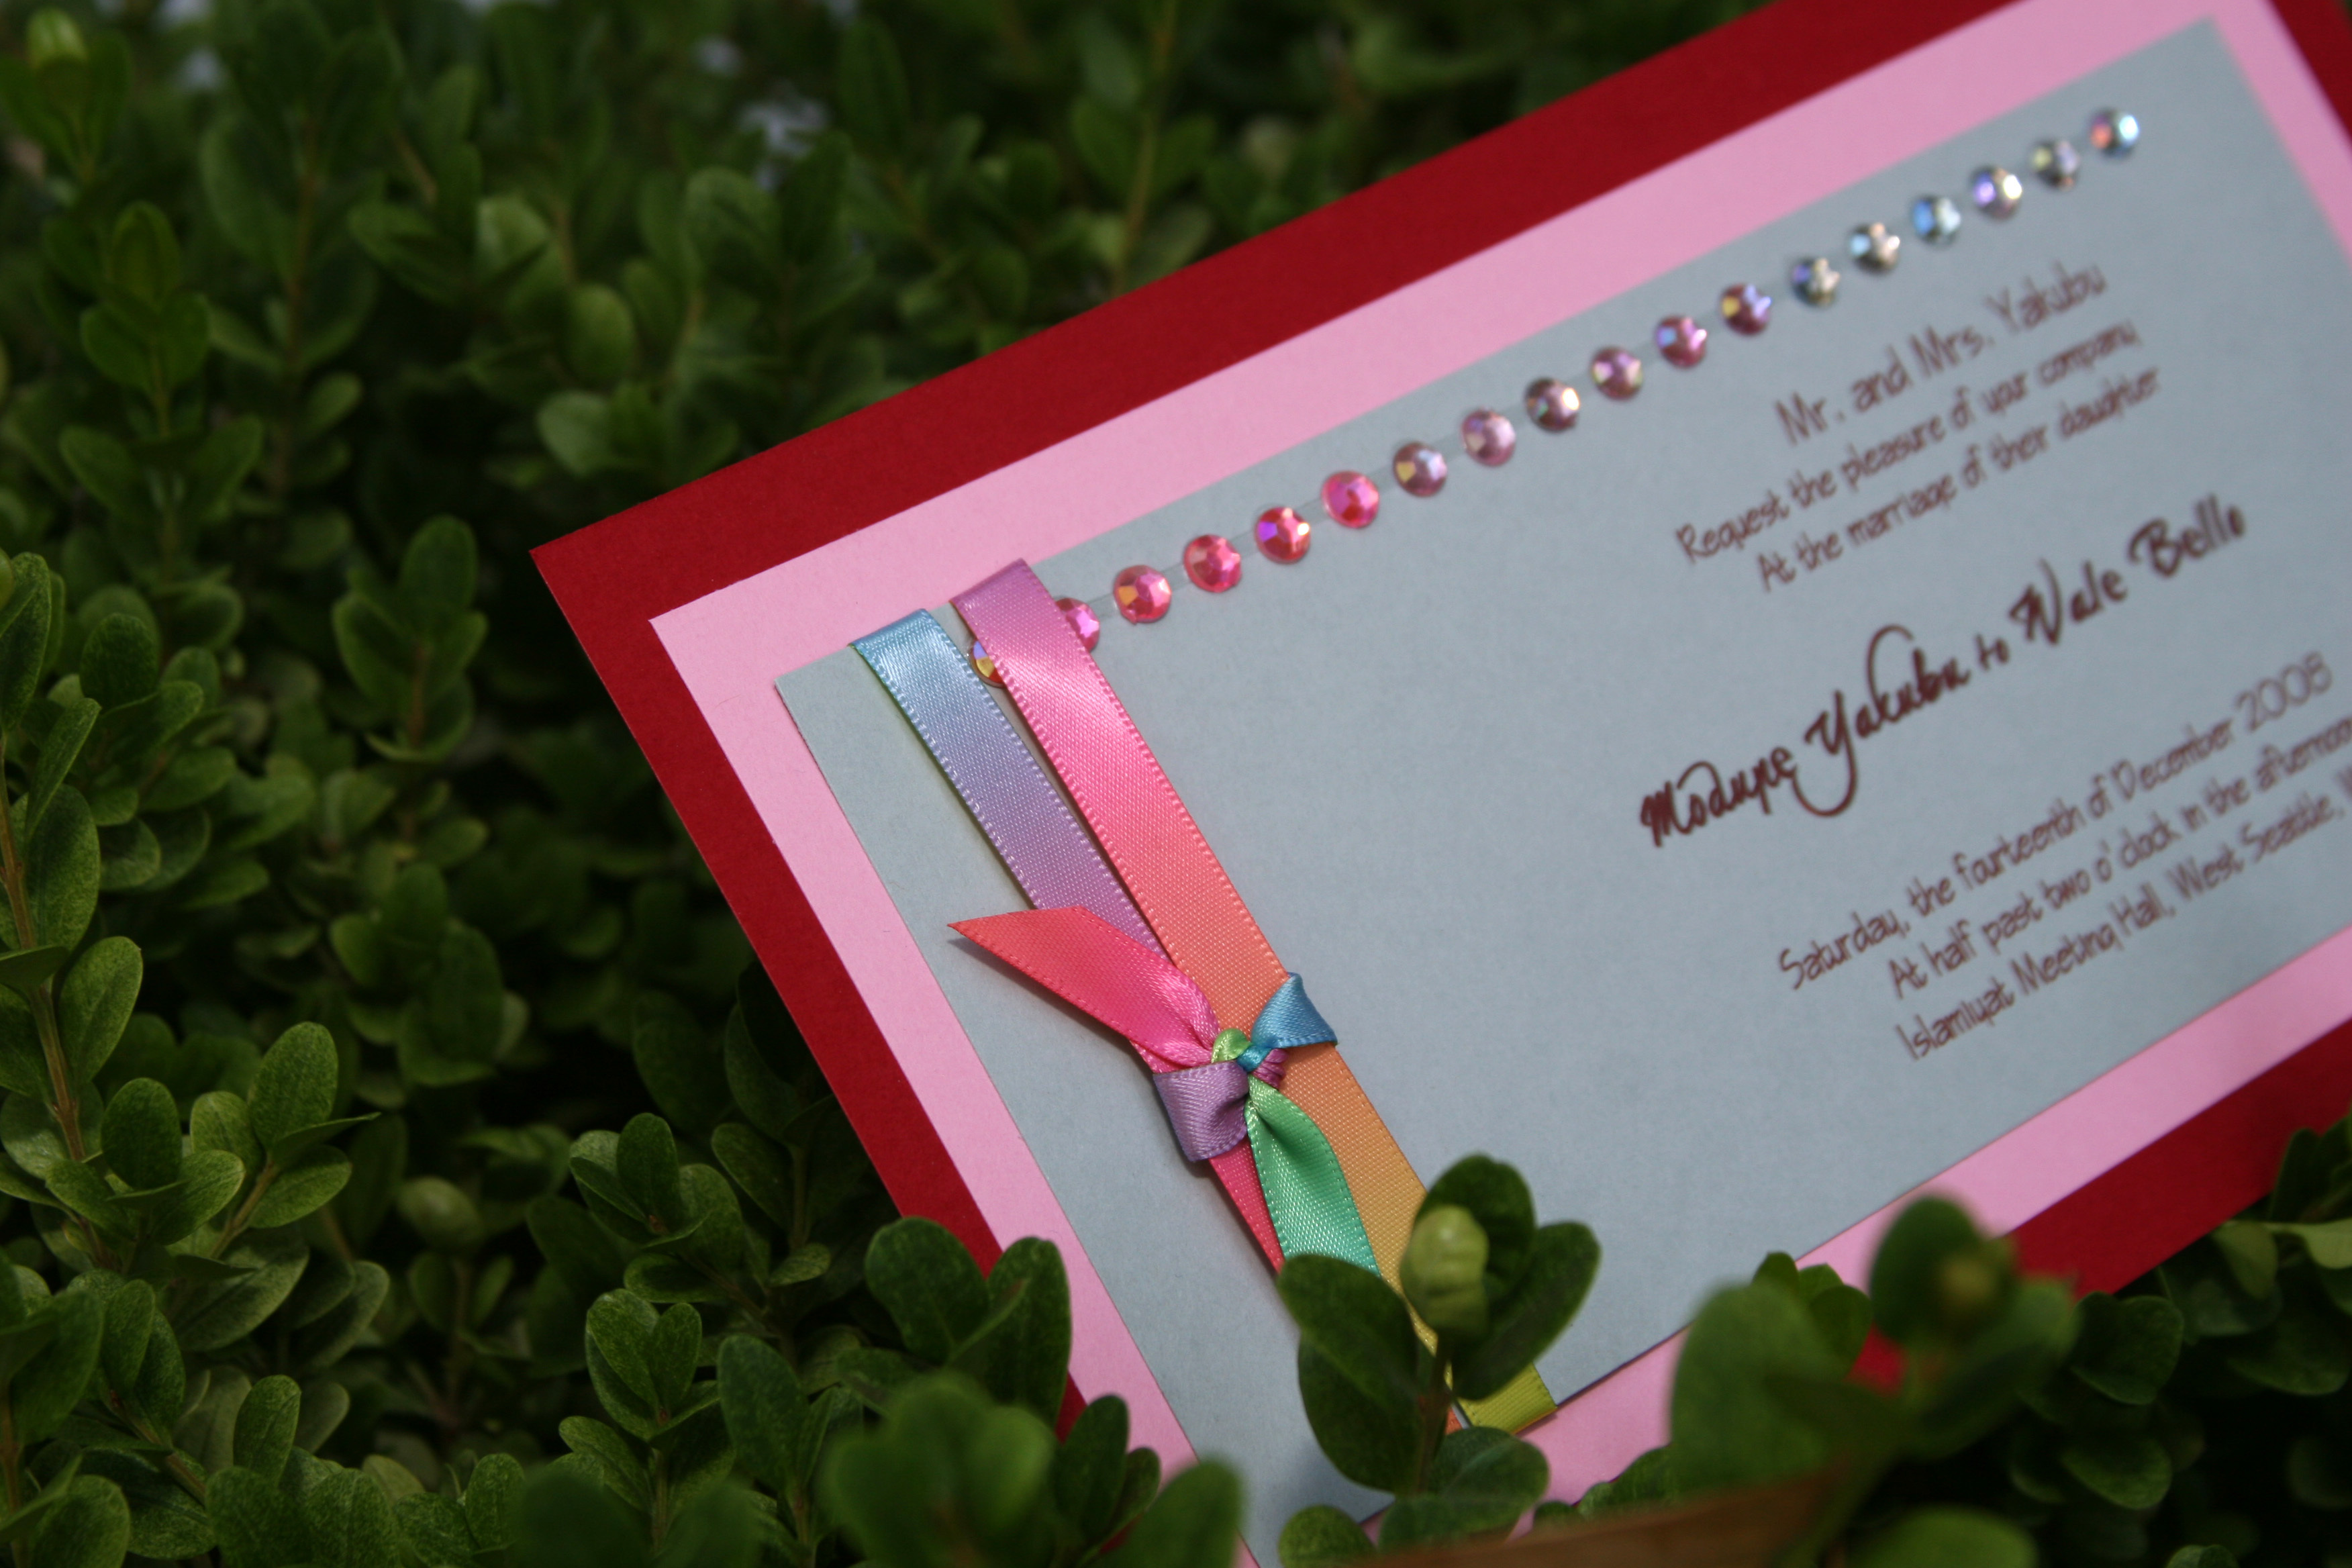 Stationery, white, yellow, orange, pink, red, purple, blue, green, brown, silver, Invitations, Ijorere the invitation